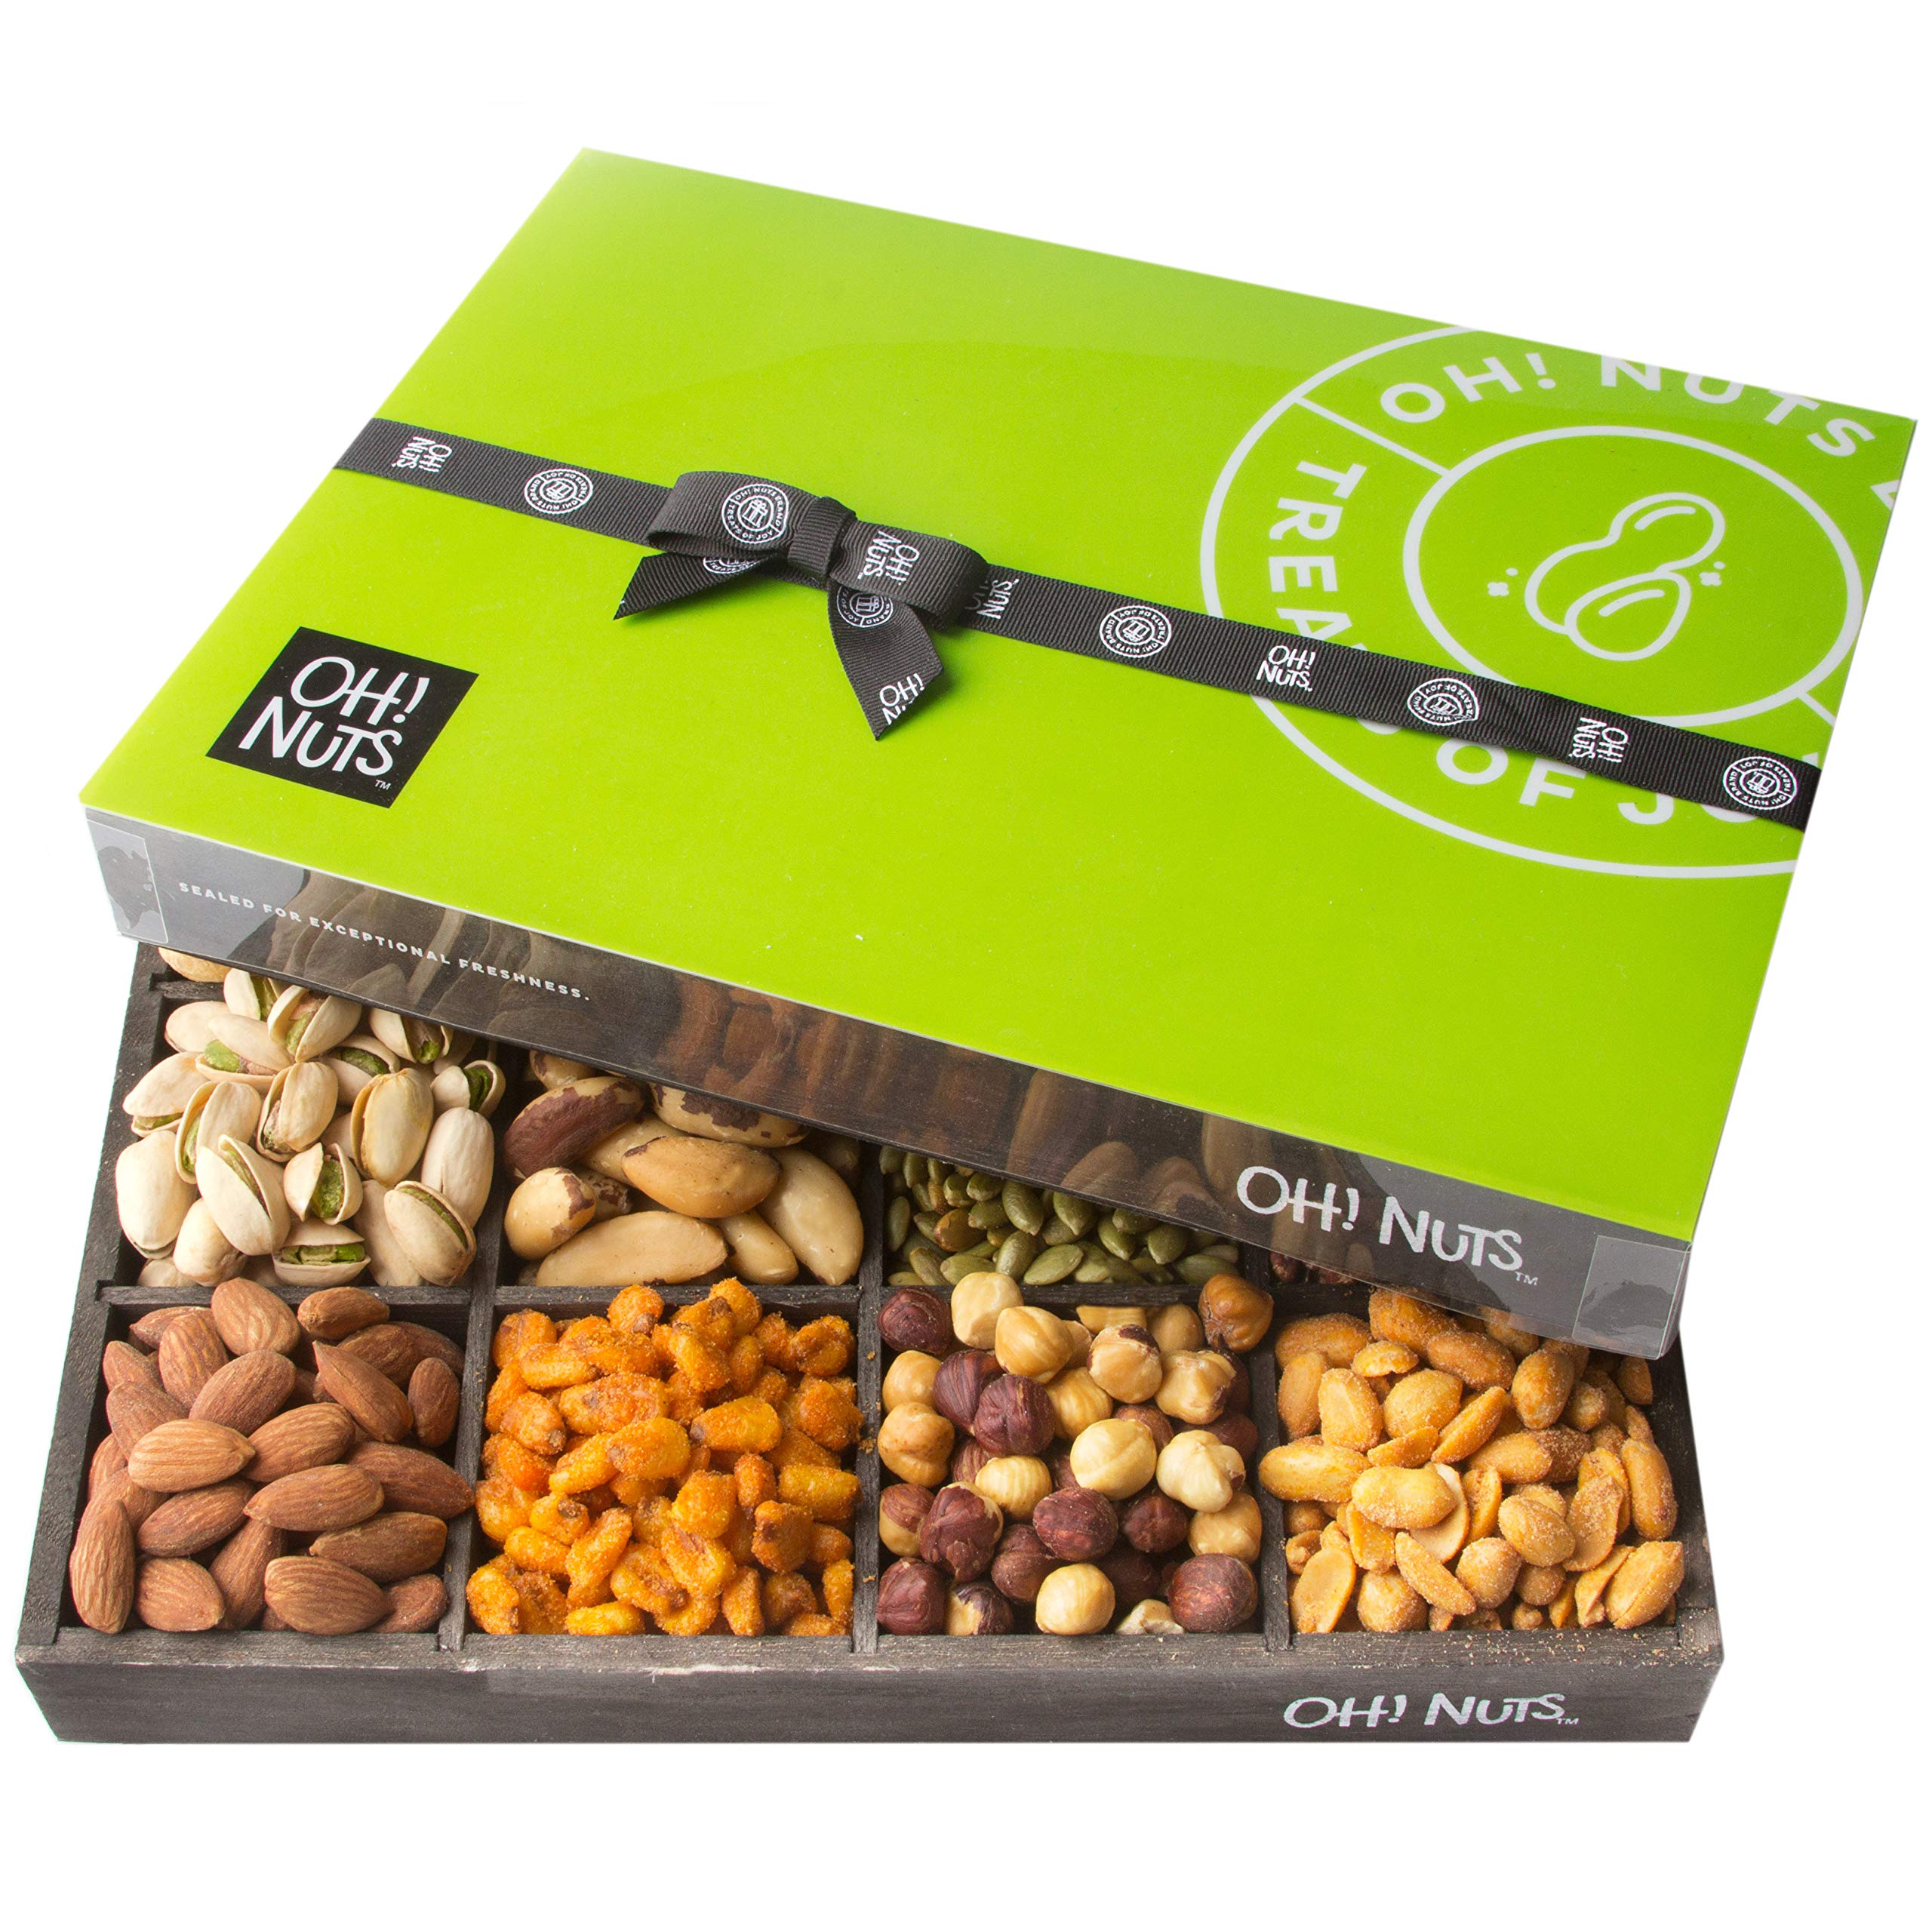 Oh! Nuts 12 Variety Mixed Nut Gift Basket, Holiday Freshly Roasted Healthy Gourmet Snack Gifts| Premium Wood Tray | Prime Christmas Food Baskets for Men & Women, Fathers & Mother's Day Unique Idea by Oh! Nuts (Image #3)